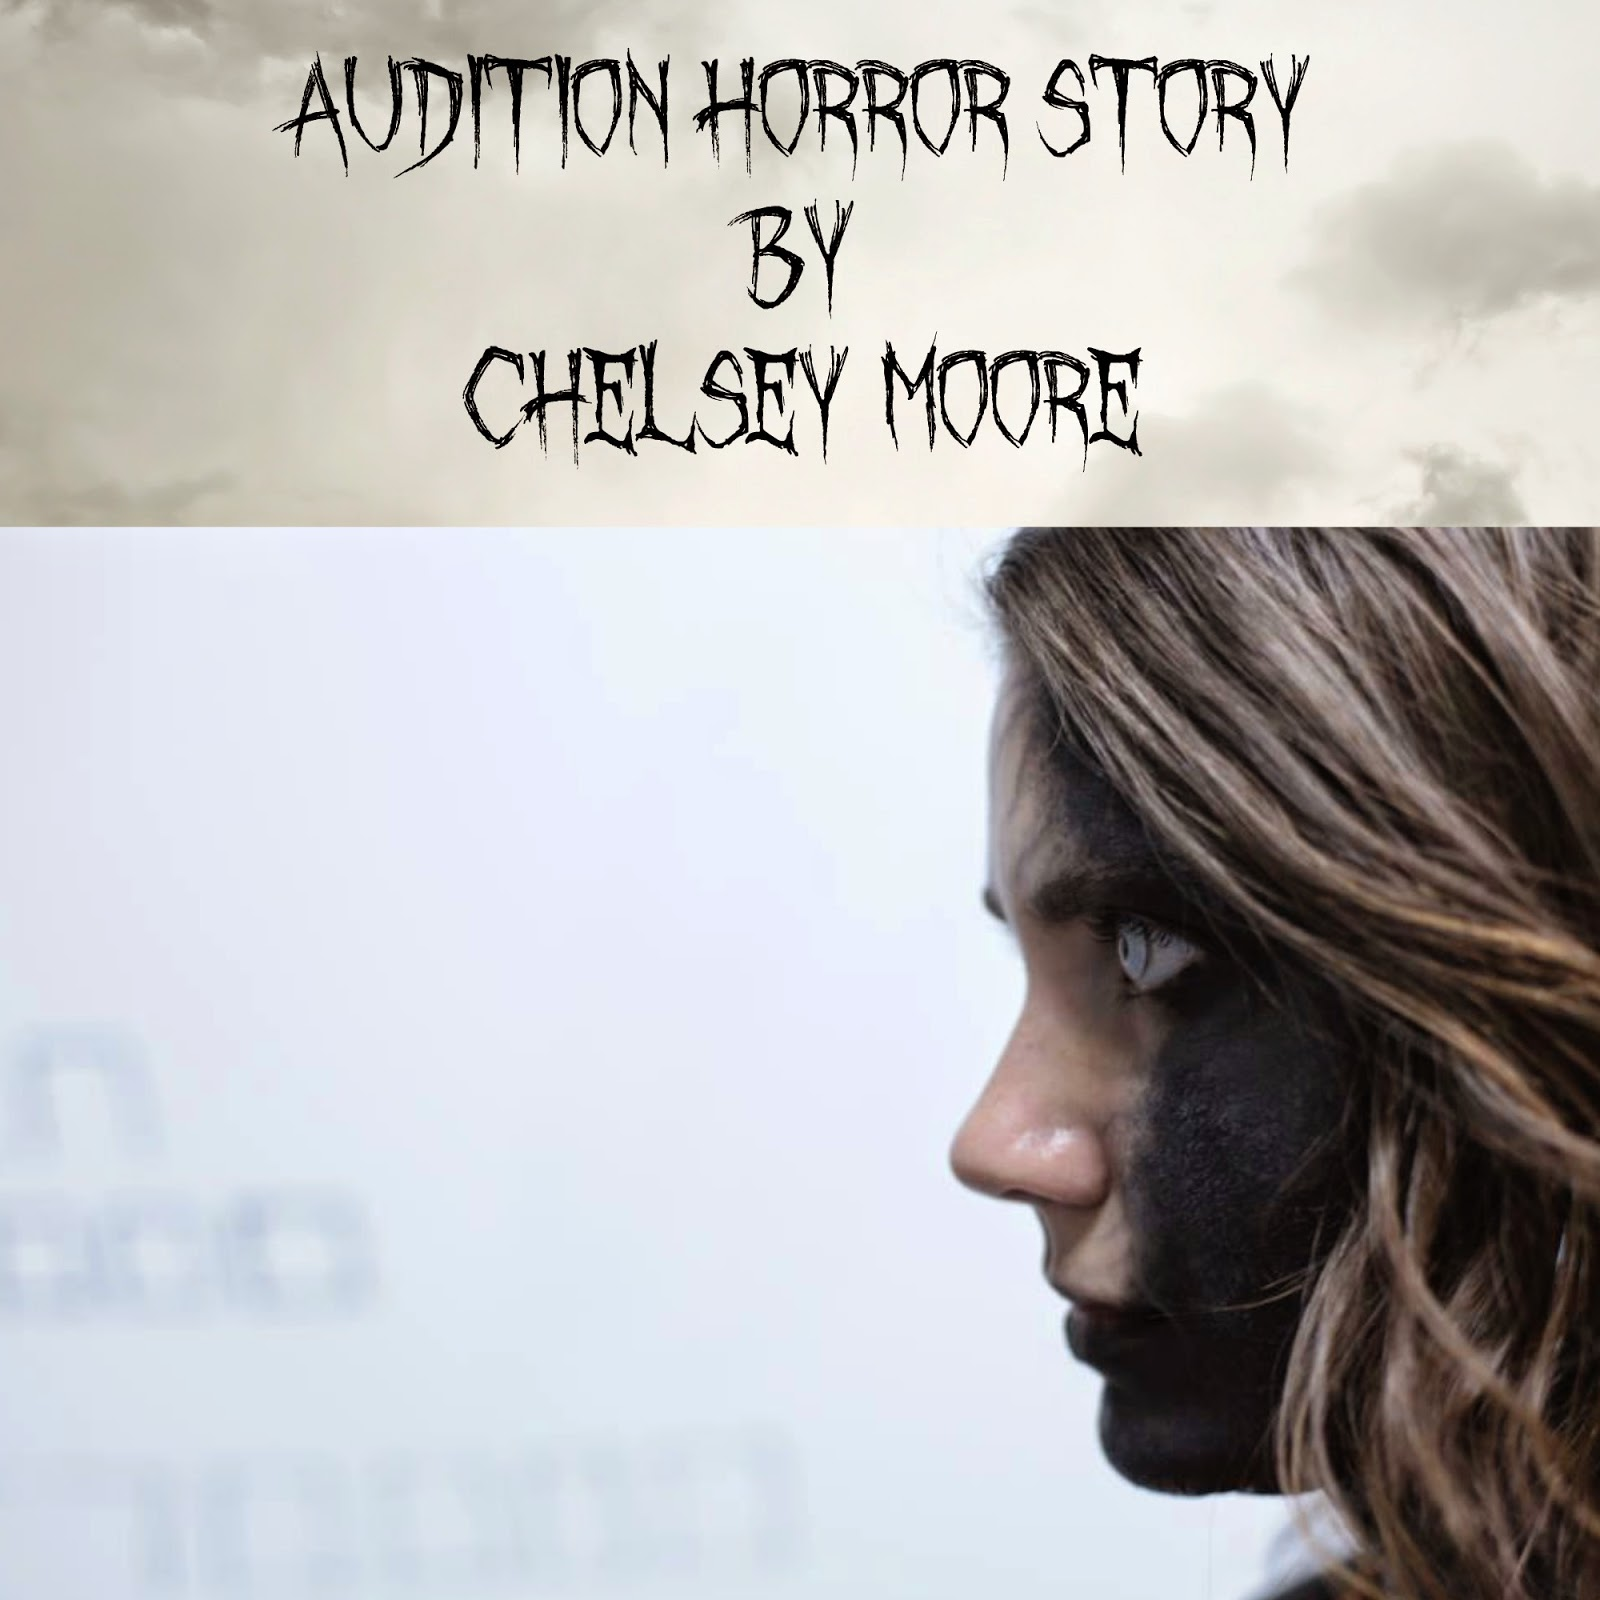 Chelsey Moore recounts an audition horror story for Ginger Soup for the Actor's Soul